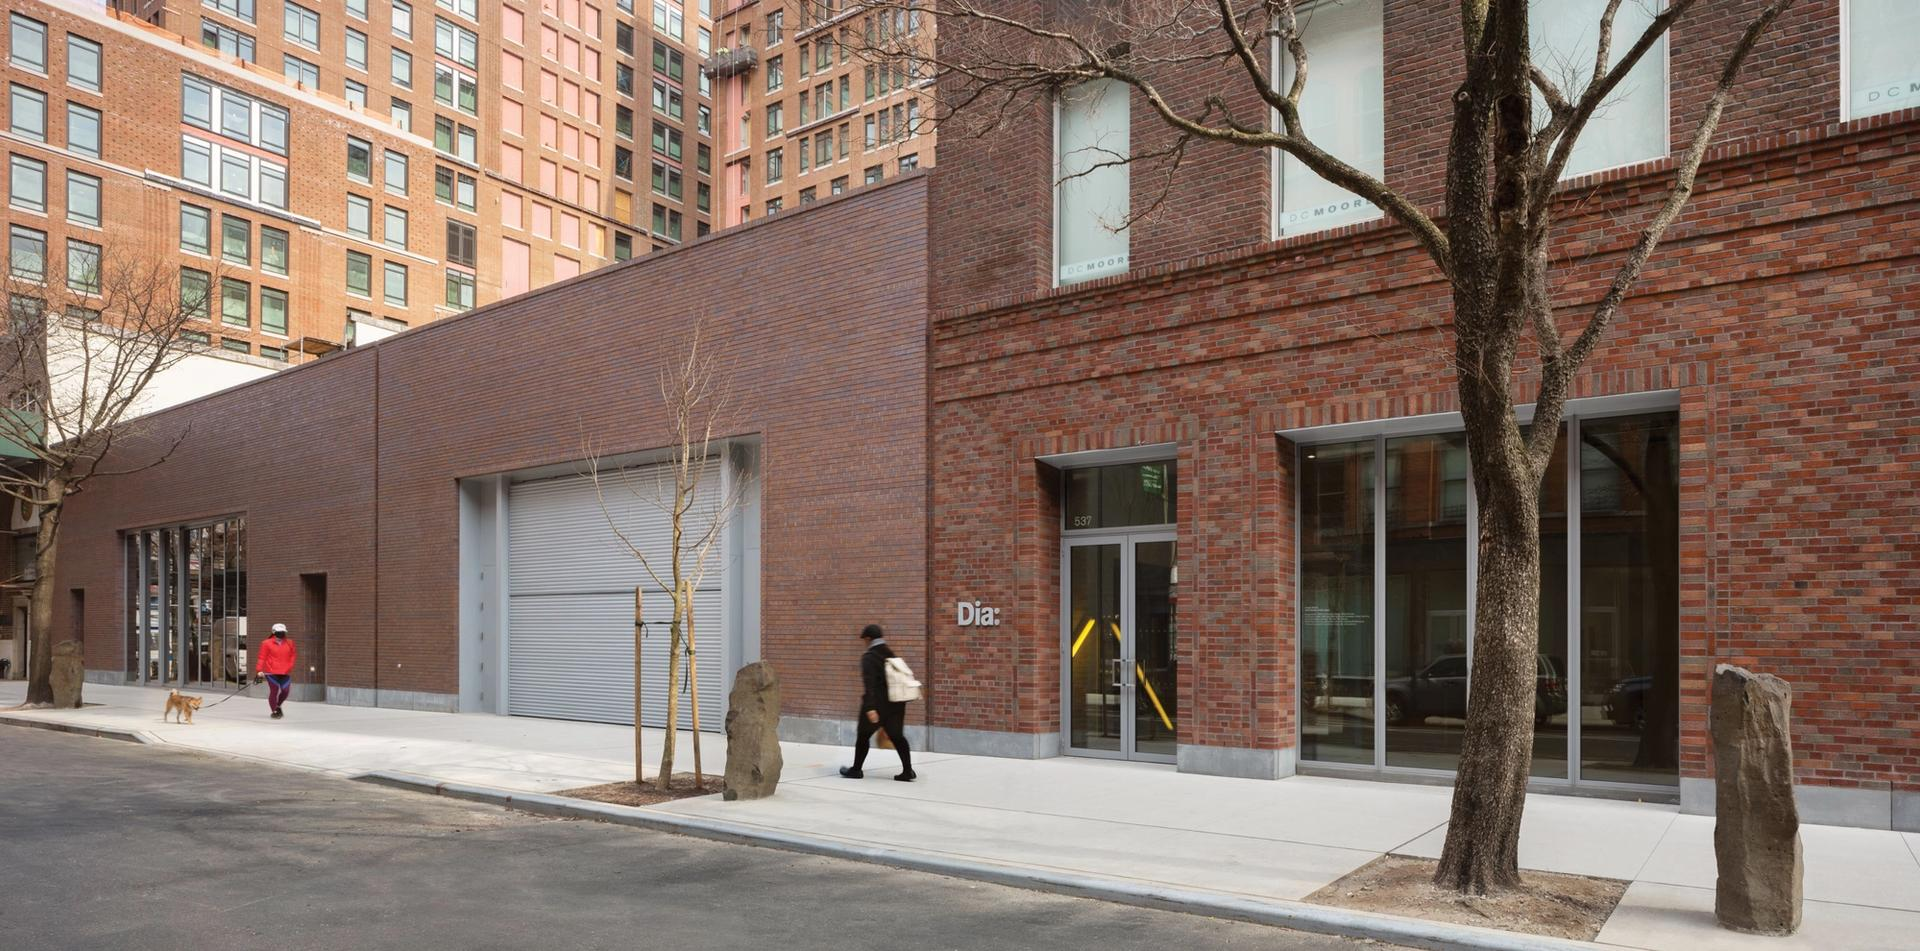 Dia reopened in Chelsea, after a two-year renovation Photo: Elizabeth Felicella, courtesy of Dia